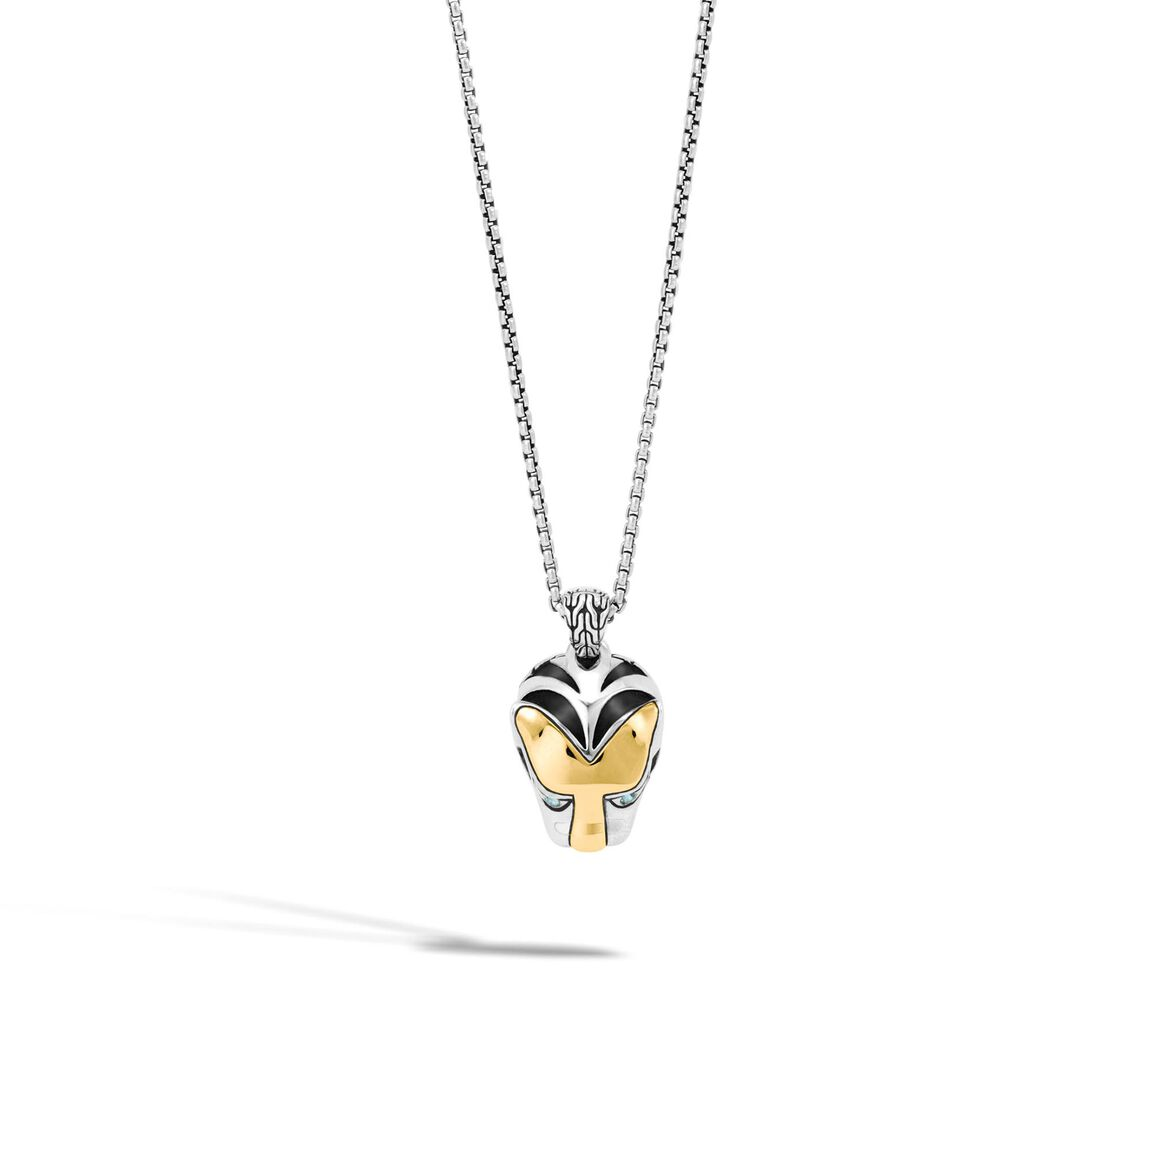 Legends Macan Pendant Necklace in Silver and 18K Gold